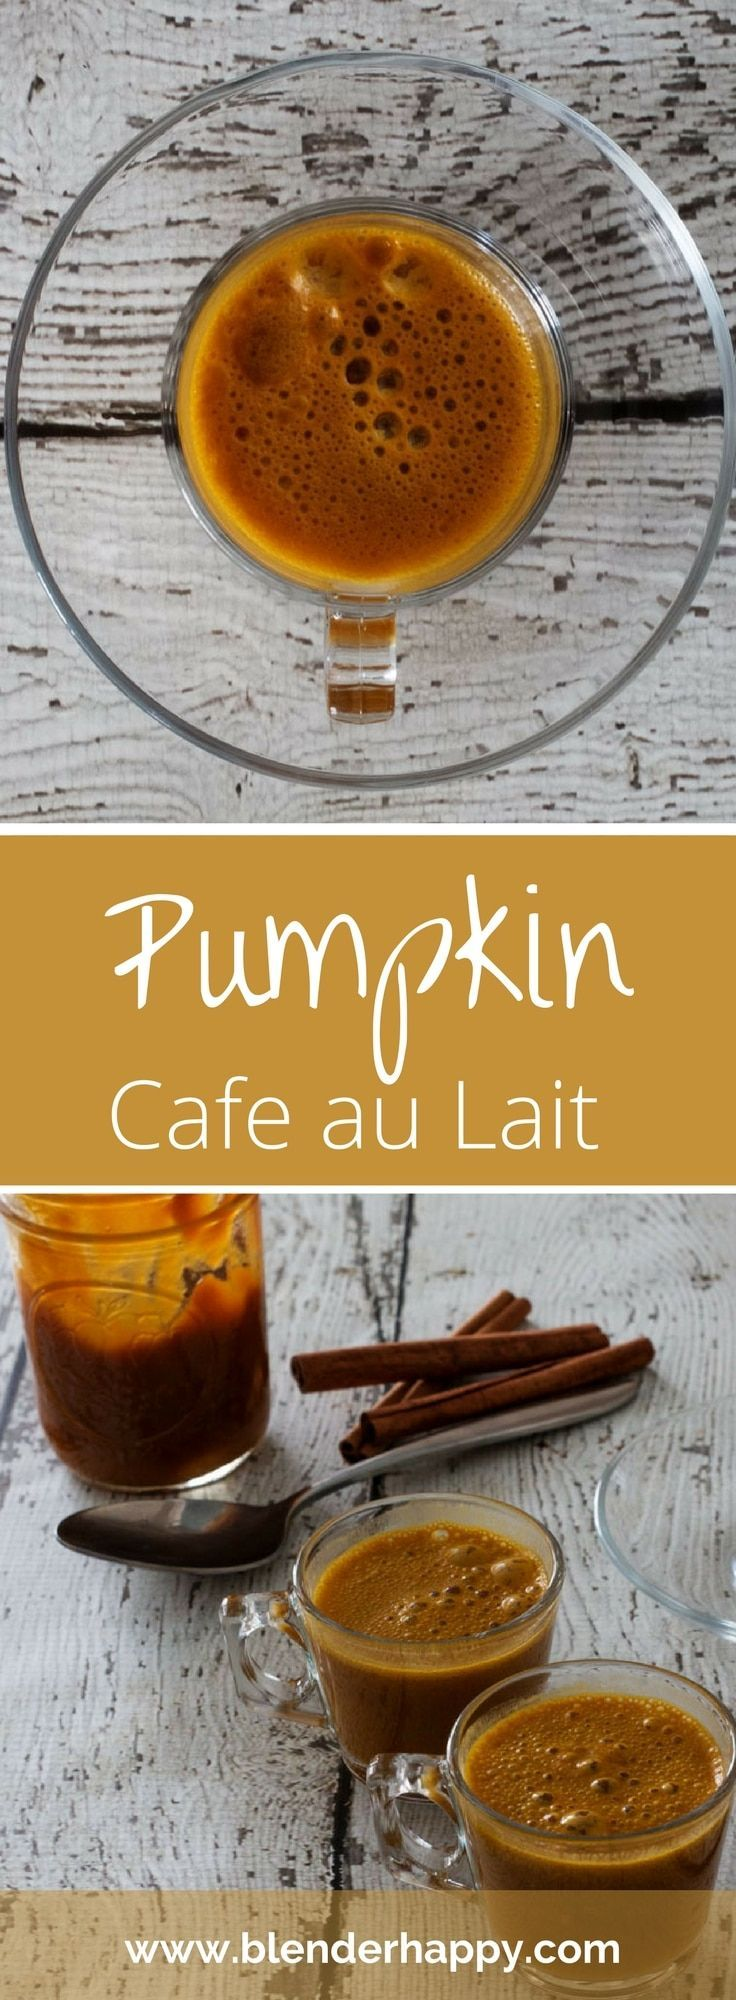 Pumpkin Cafe au Lait Recipe Easy peasy recipes